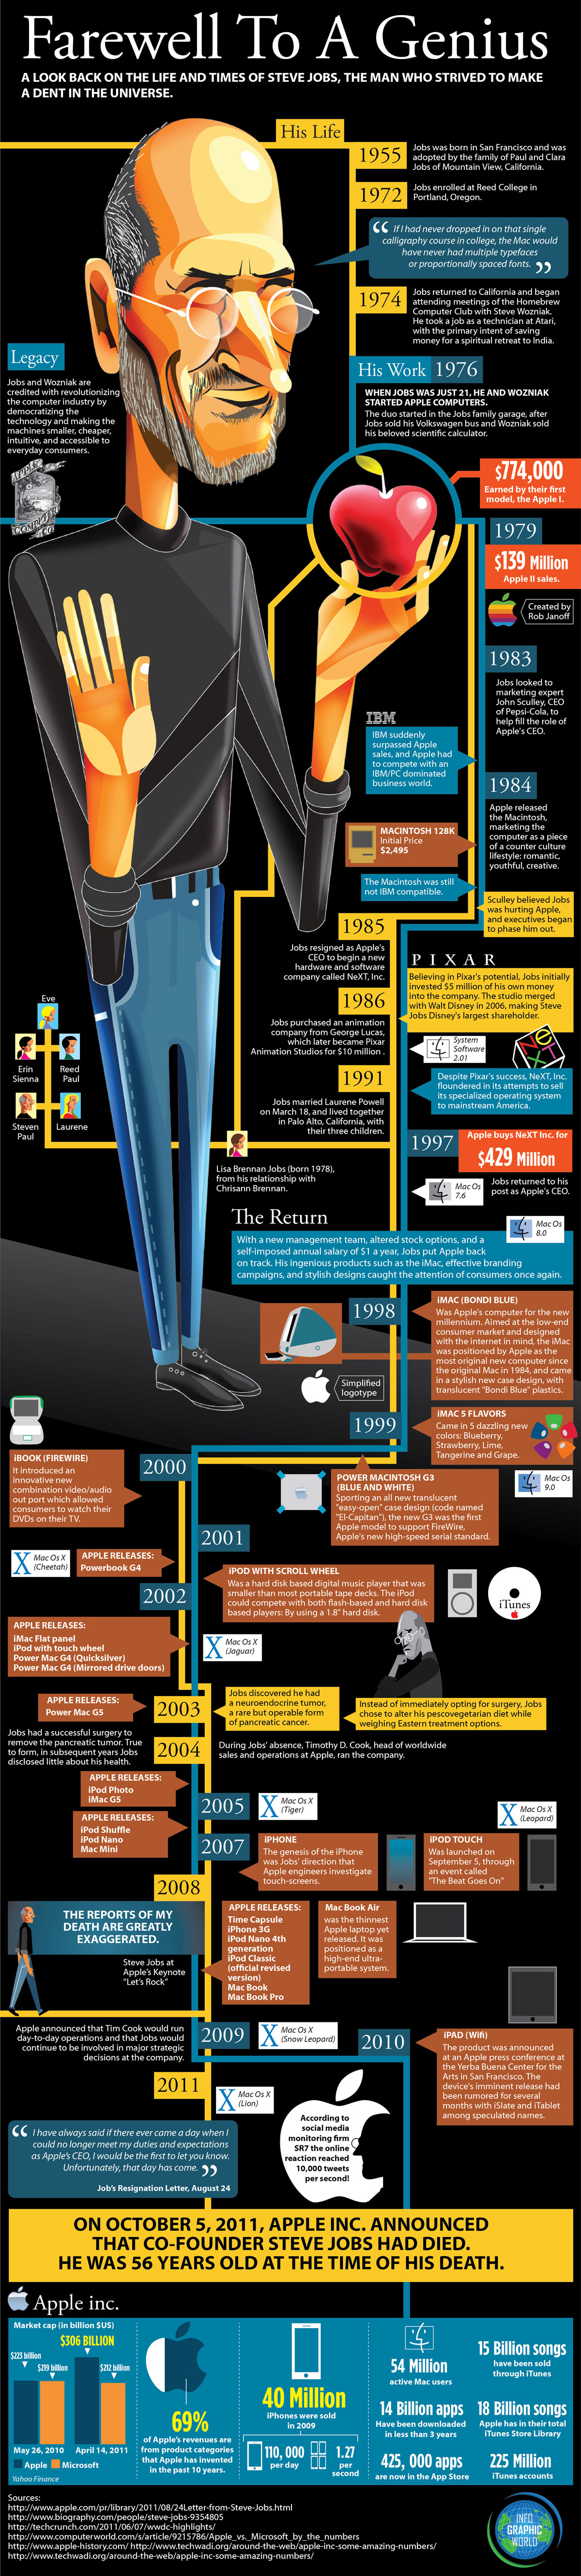 Farewell to A Genius [Steve Jobs Infographic]